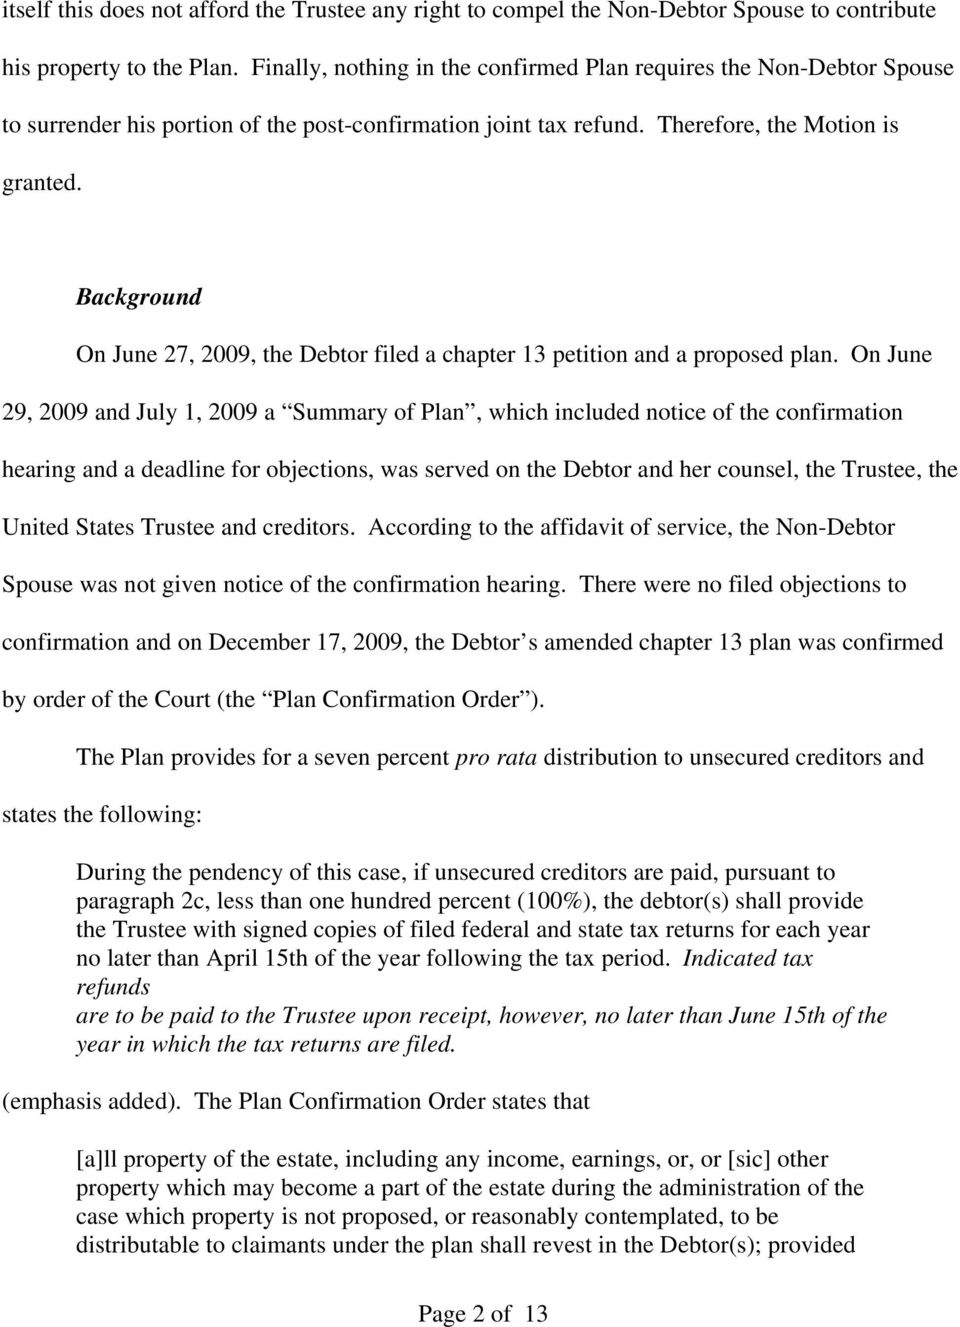 Background On June 27, 2009, the Debtor filed a chapter 13 petition and a proposed plan.